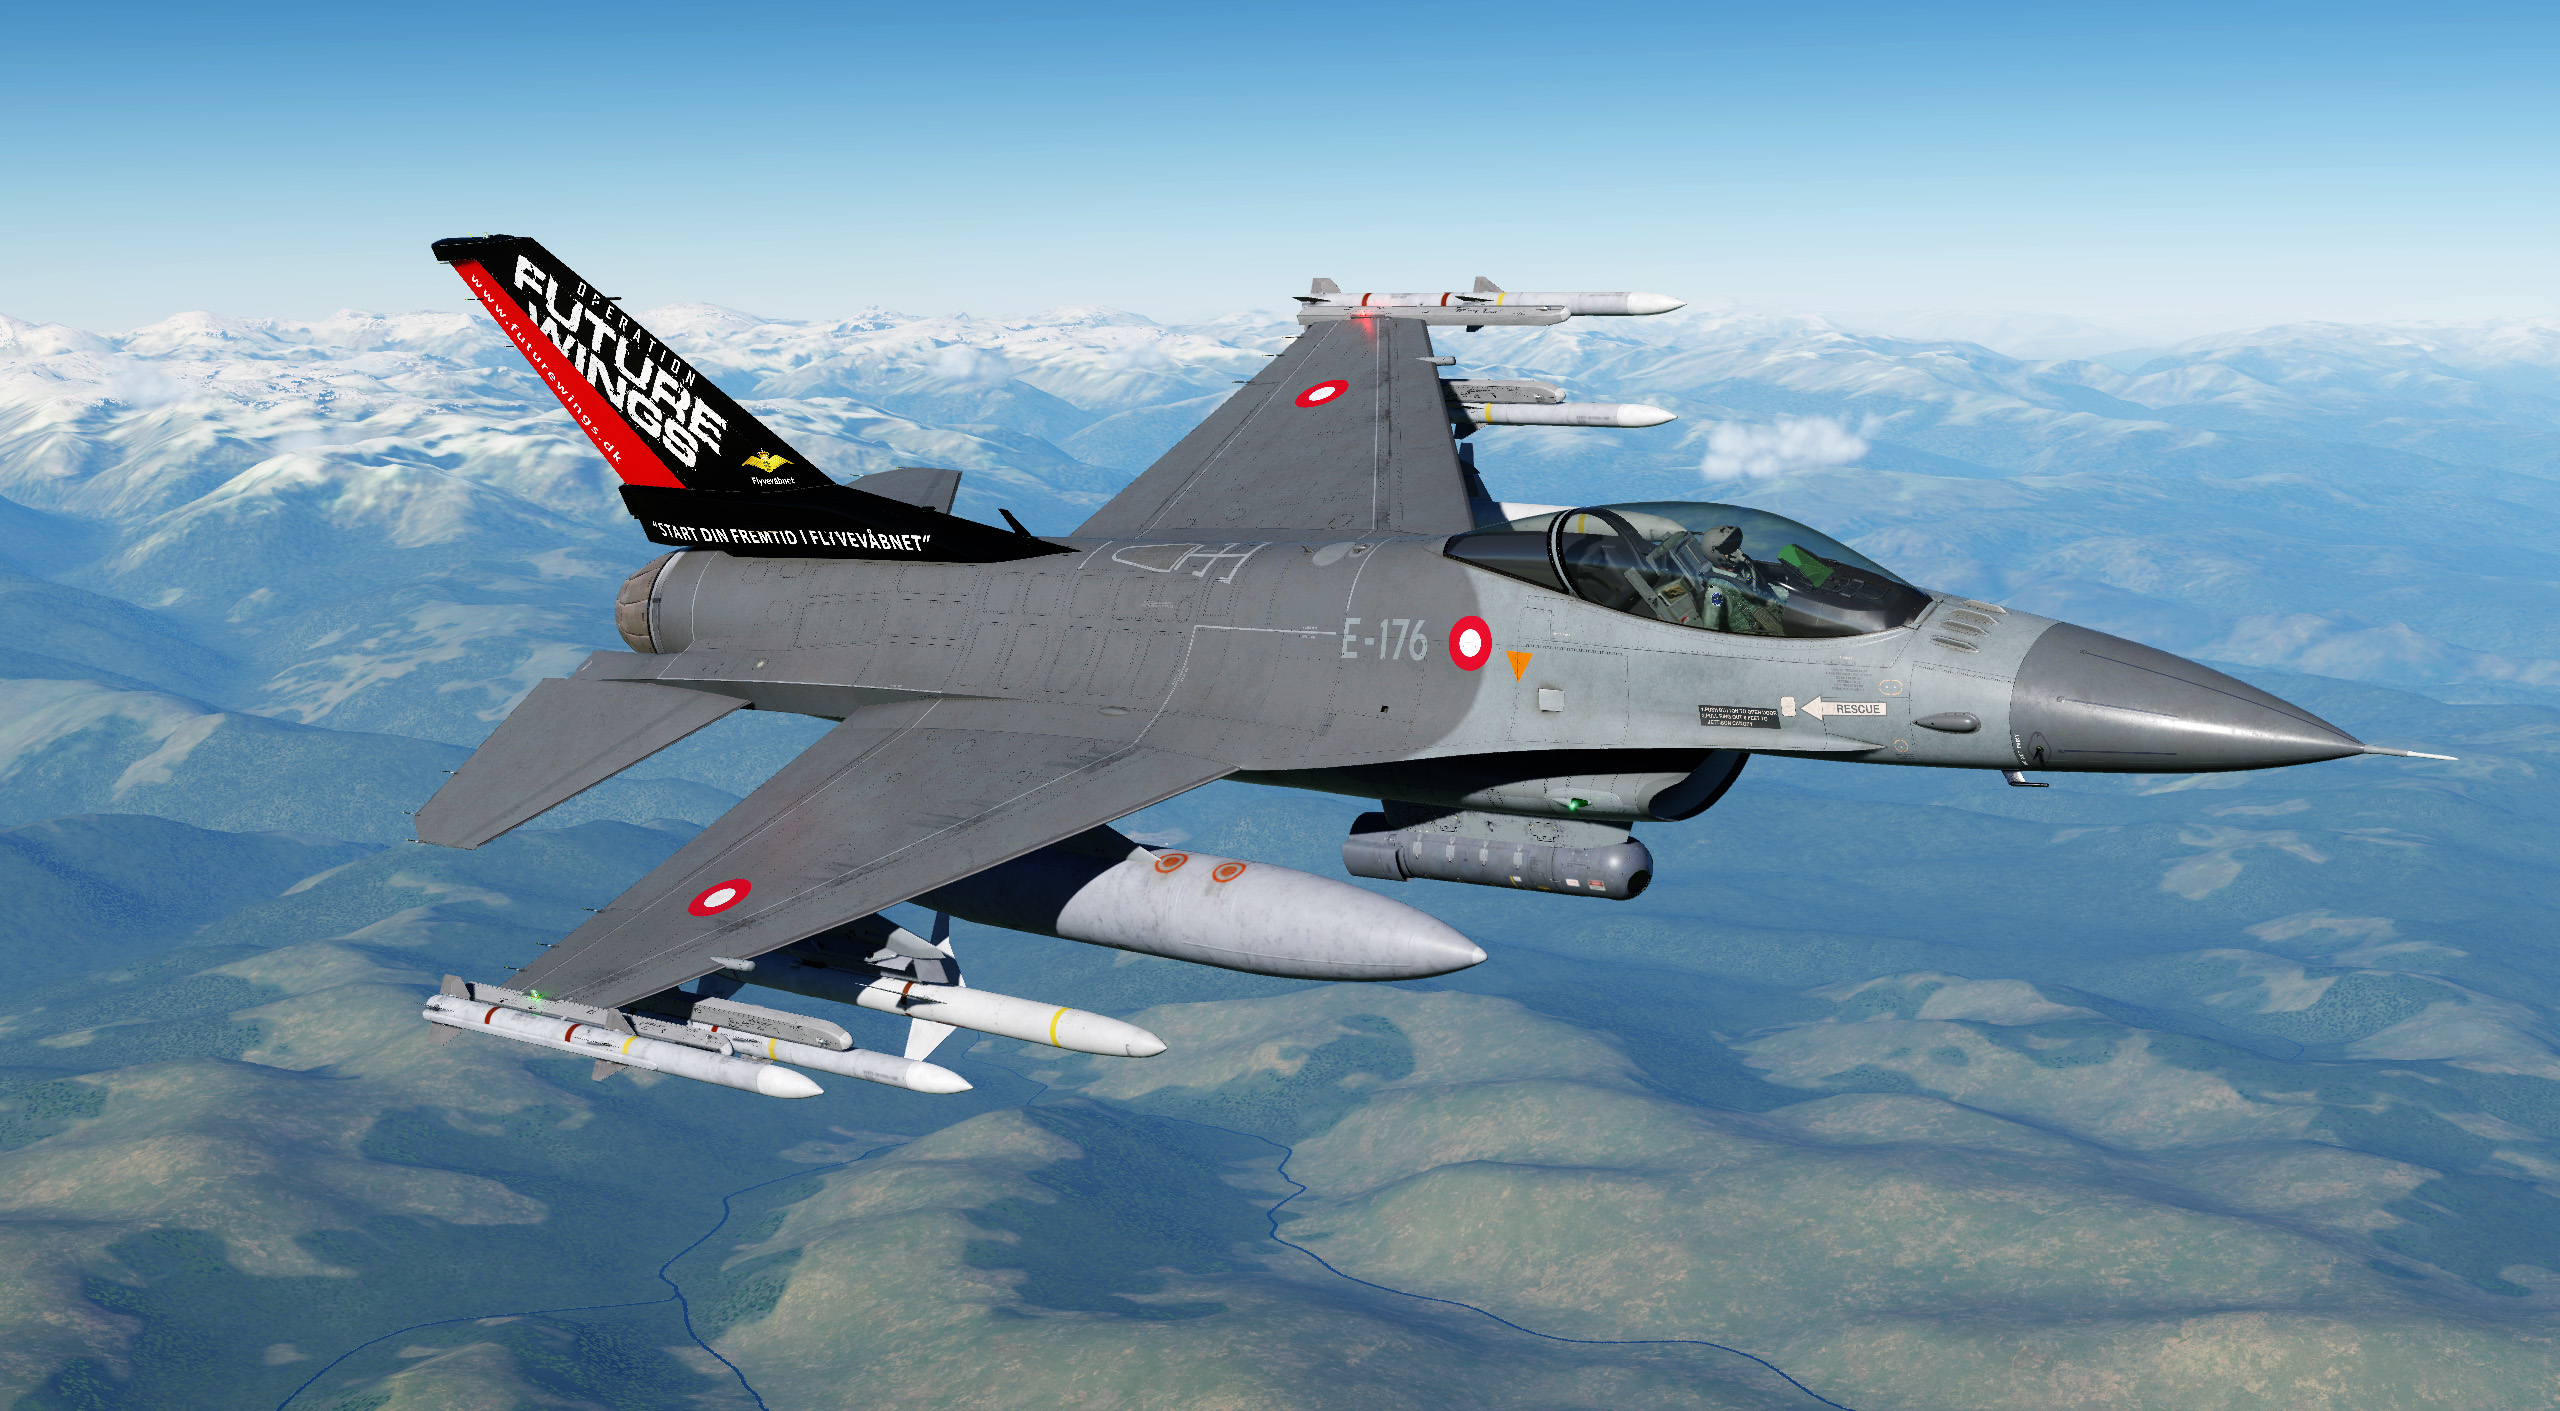 RDAF F-16A E-176 Future Wings